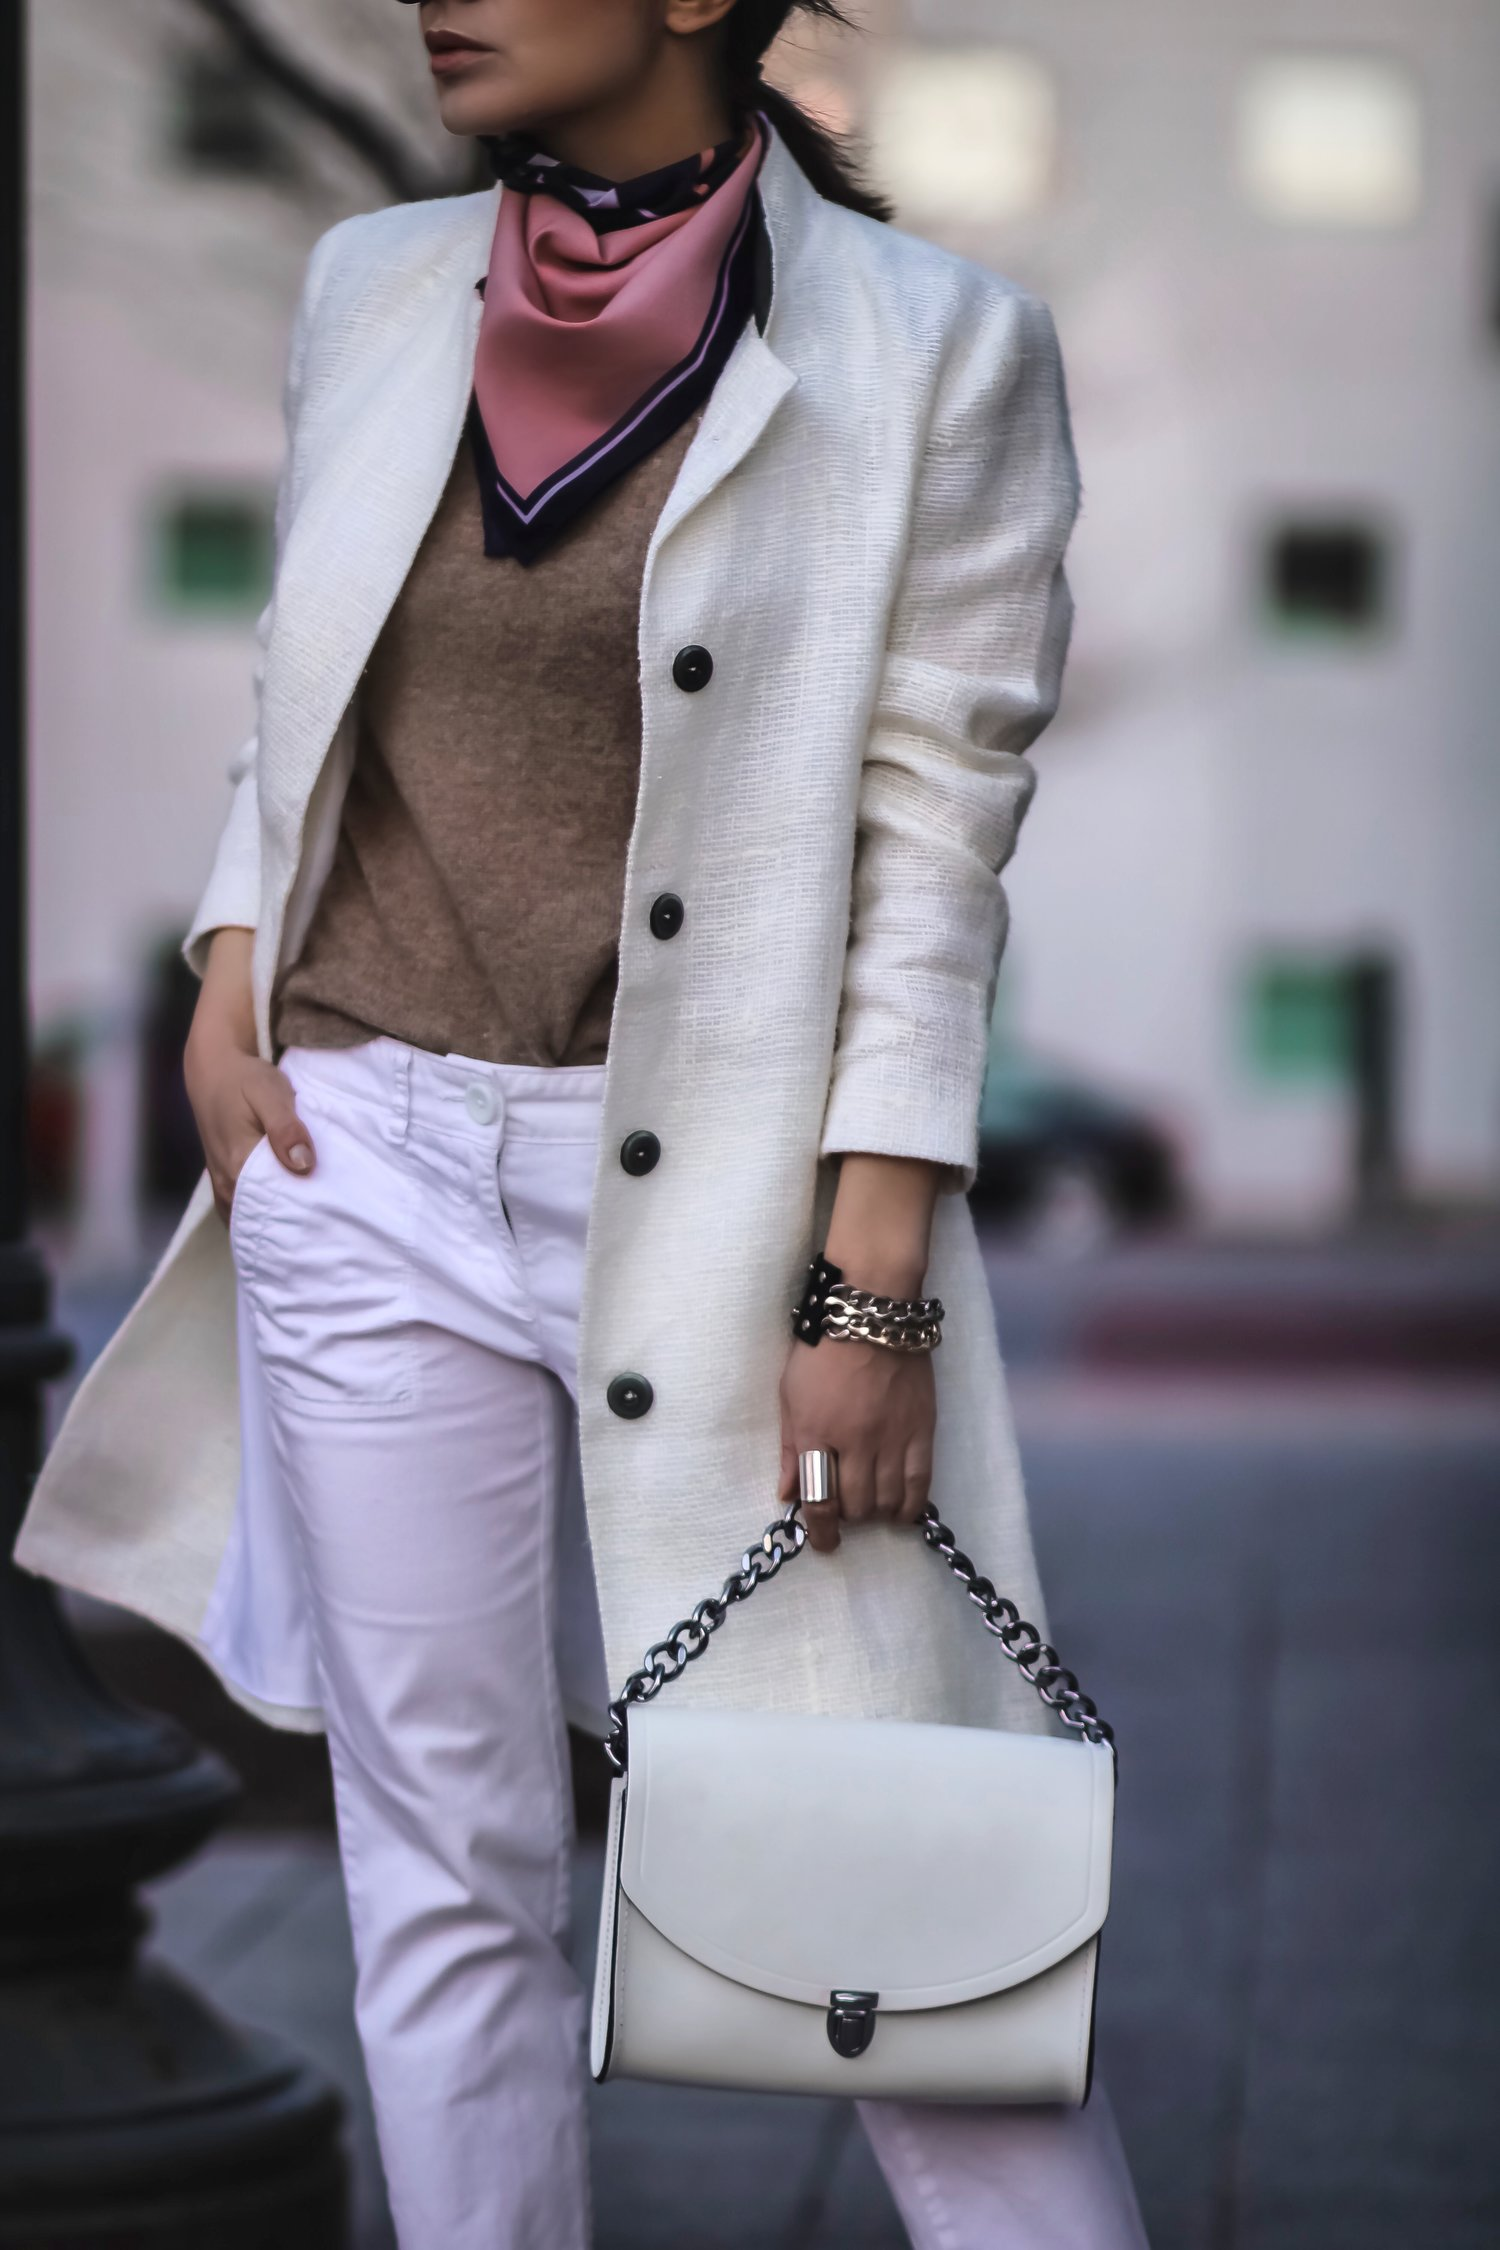 Isabel-Alexander-all-white-spring-2018-outfit-LOFT